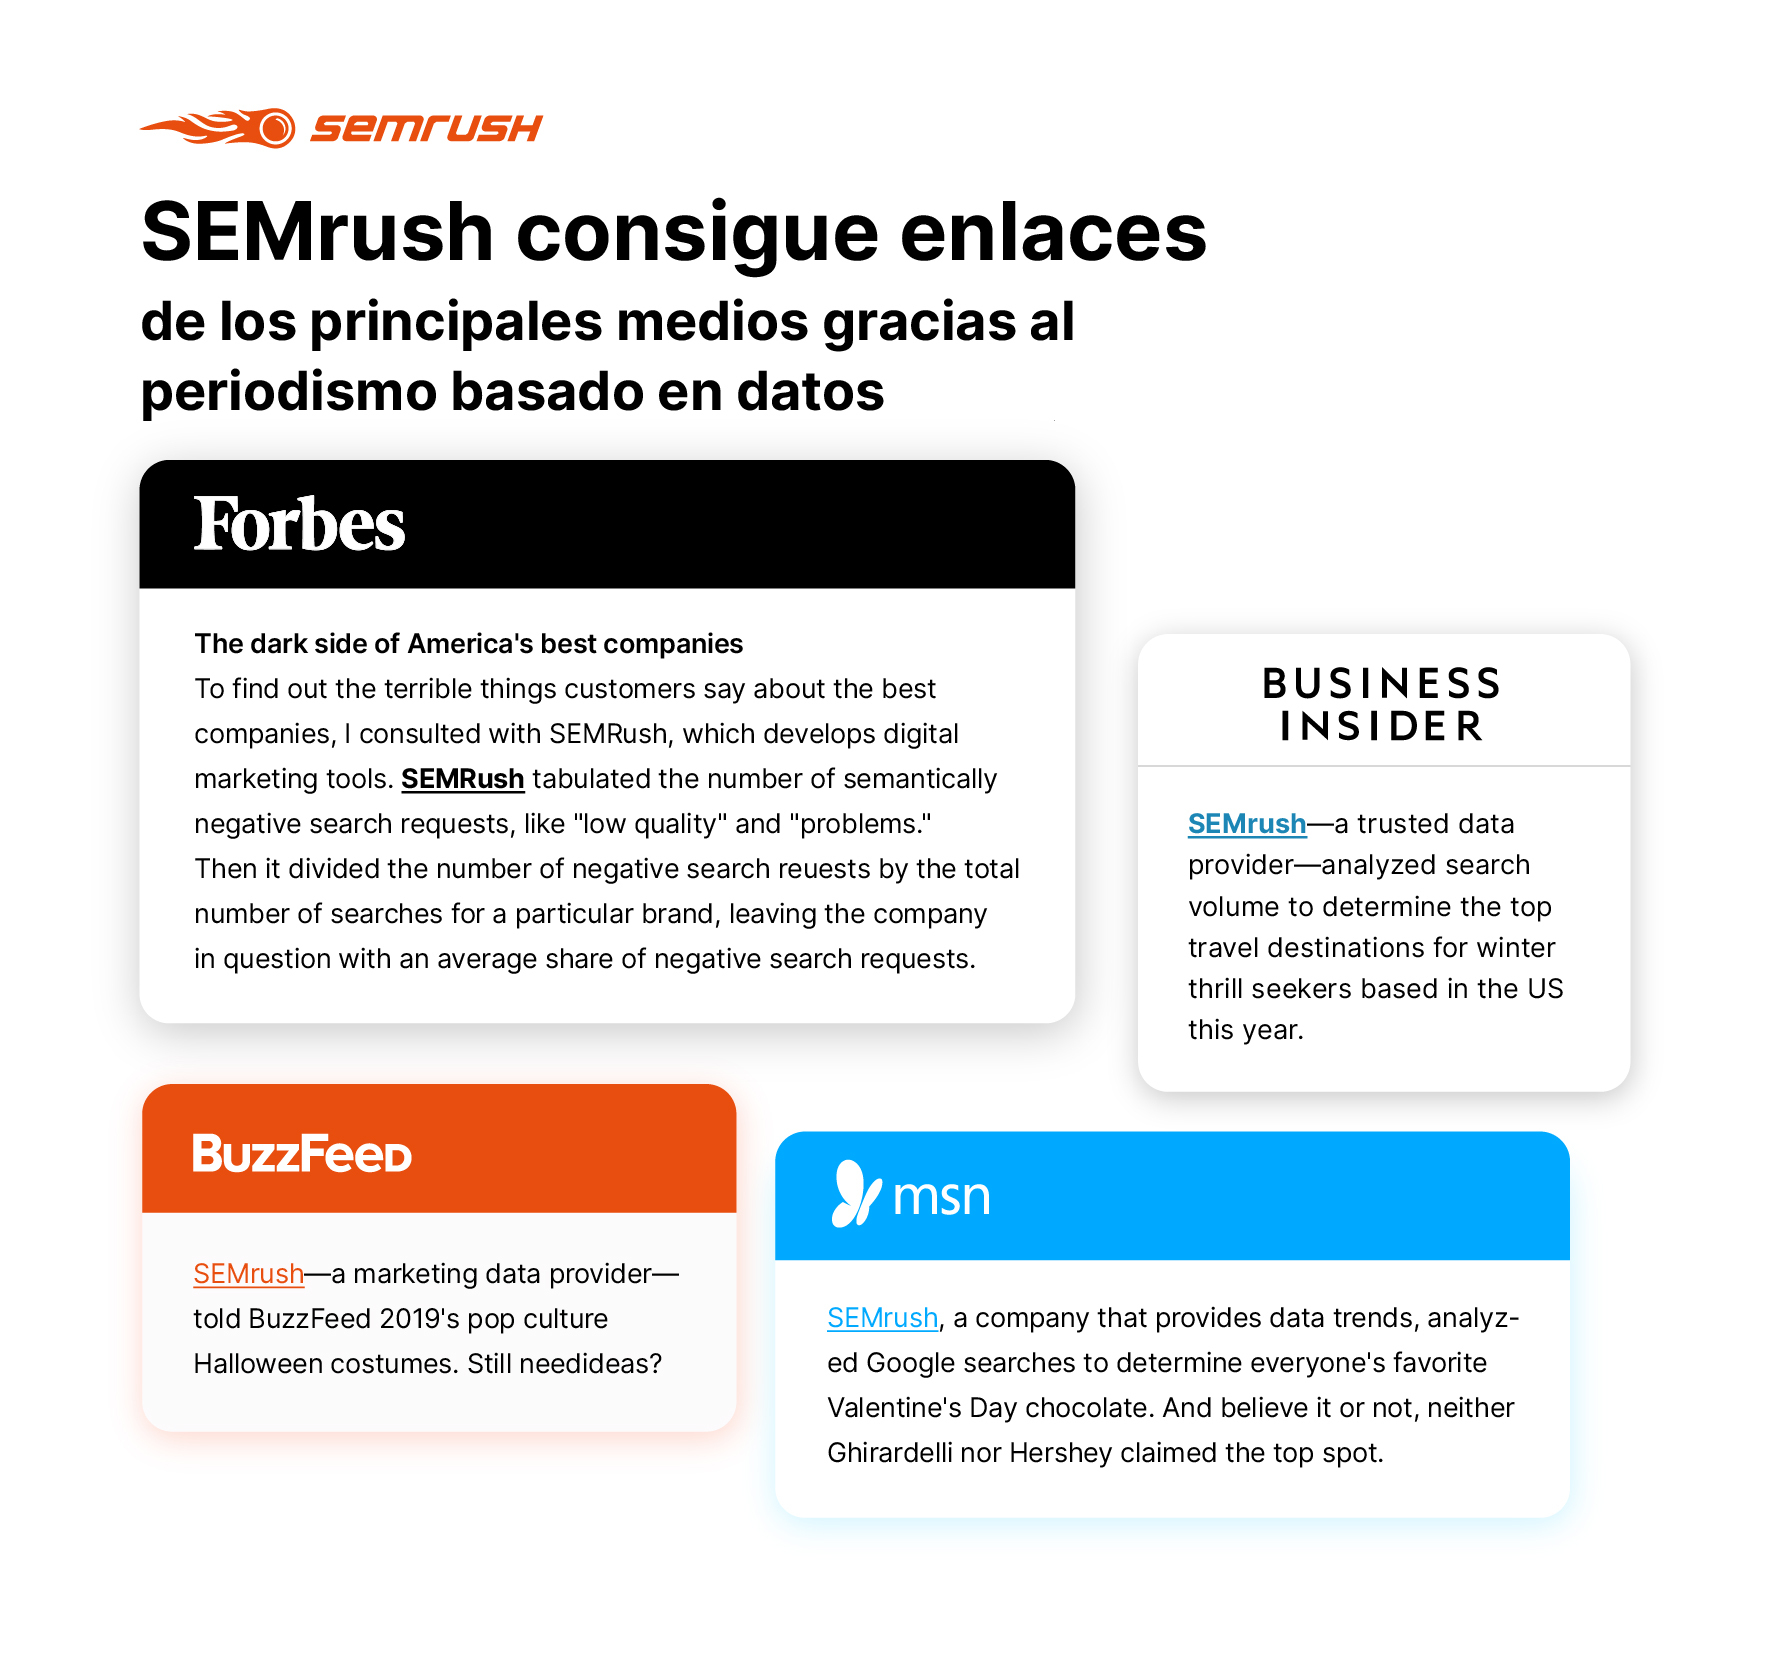 Examples of SEMrush's data-driven journalism